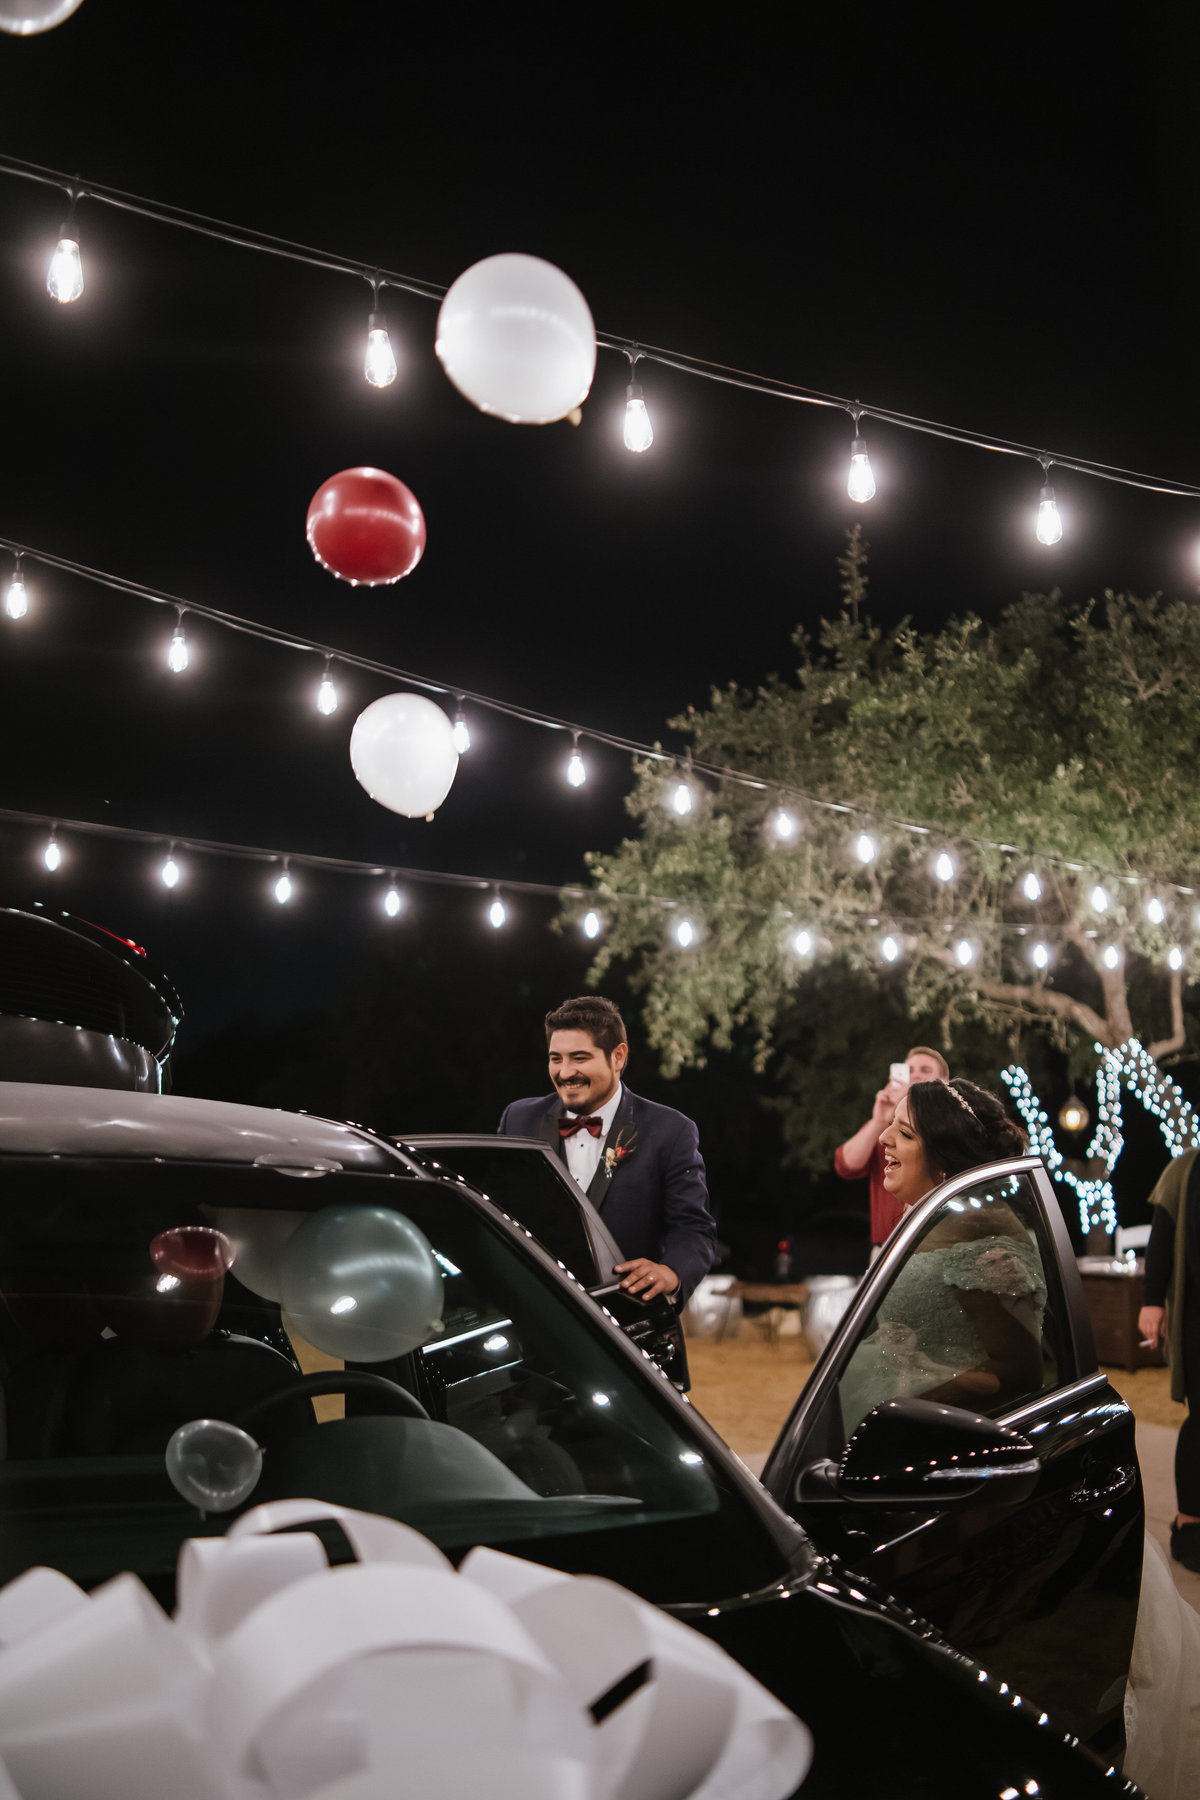 bride and groom open surprise car wedding gift at reception at Oaks at Heavenly Wedding venue in Helotes